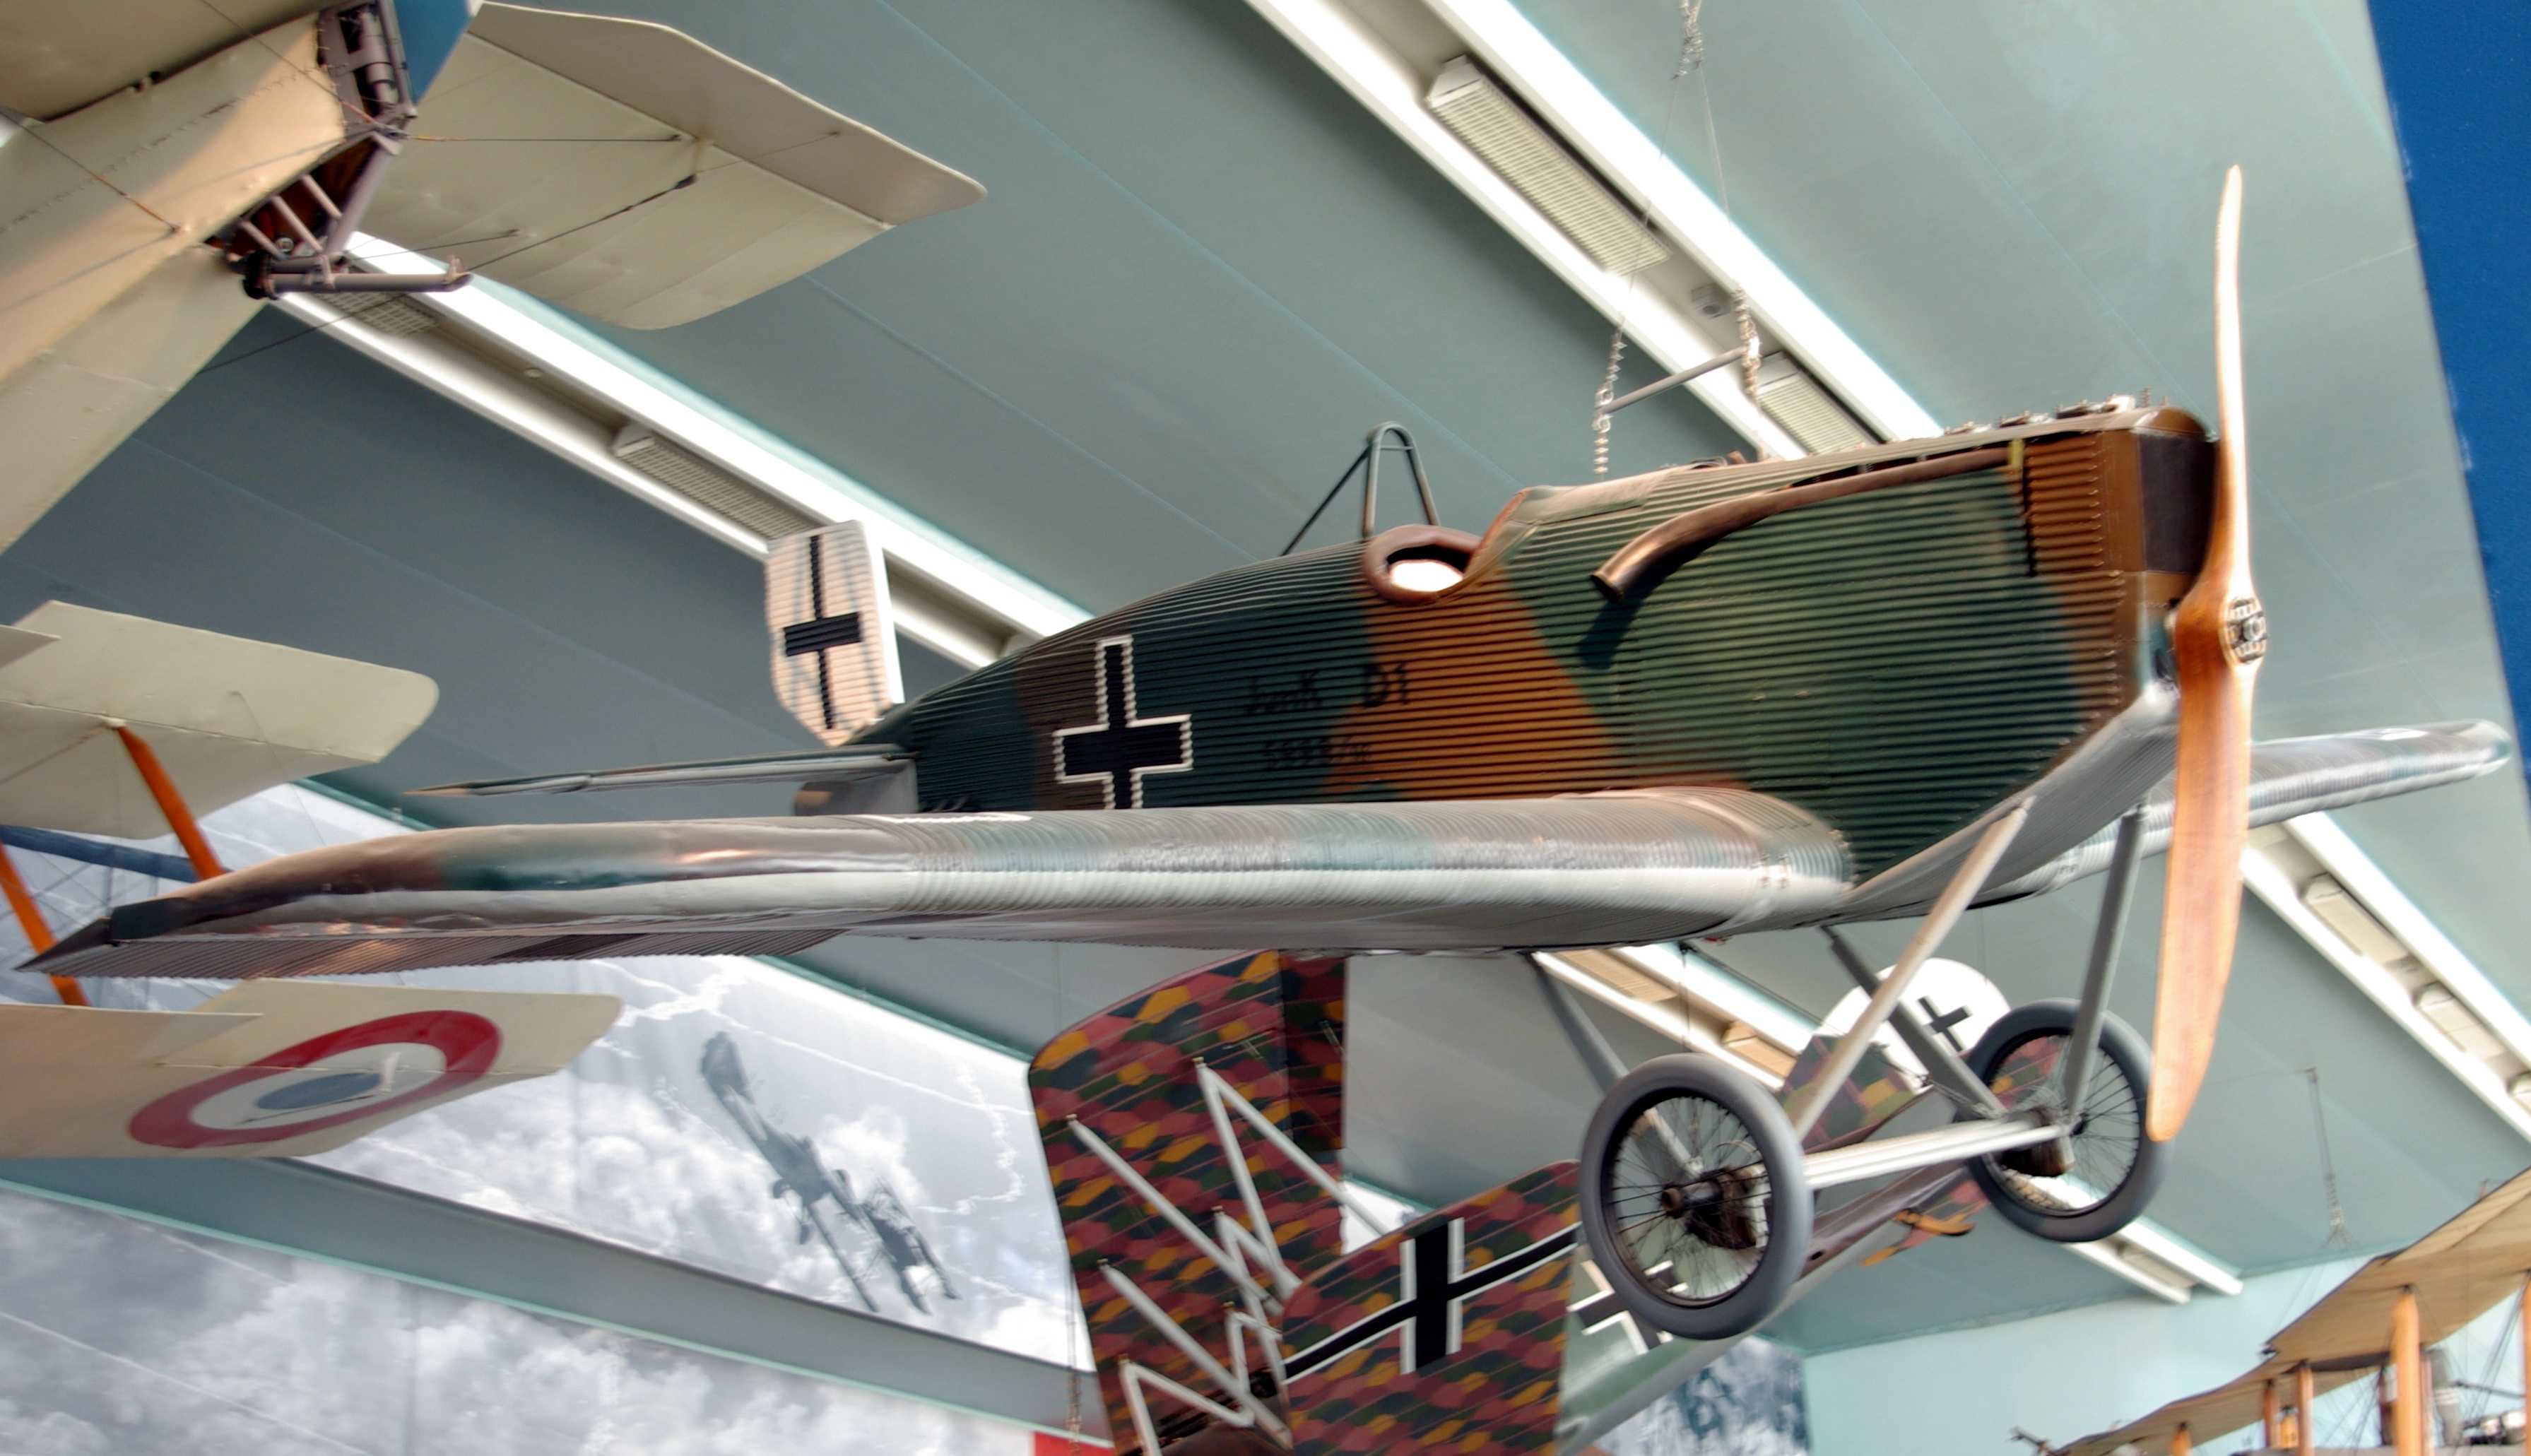 The Junkers Monoplanes